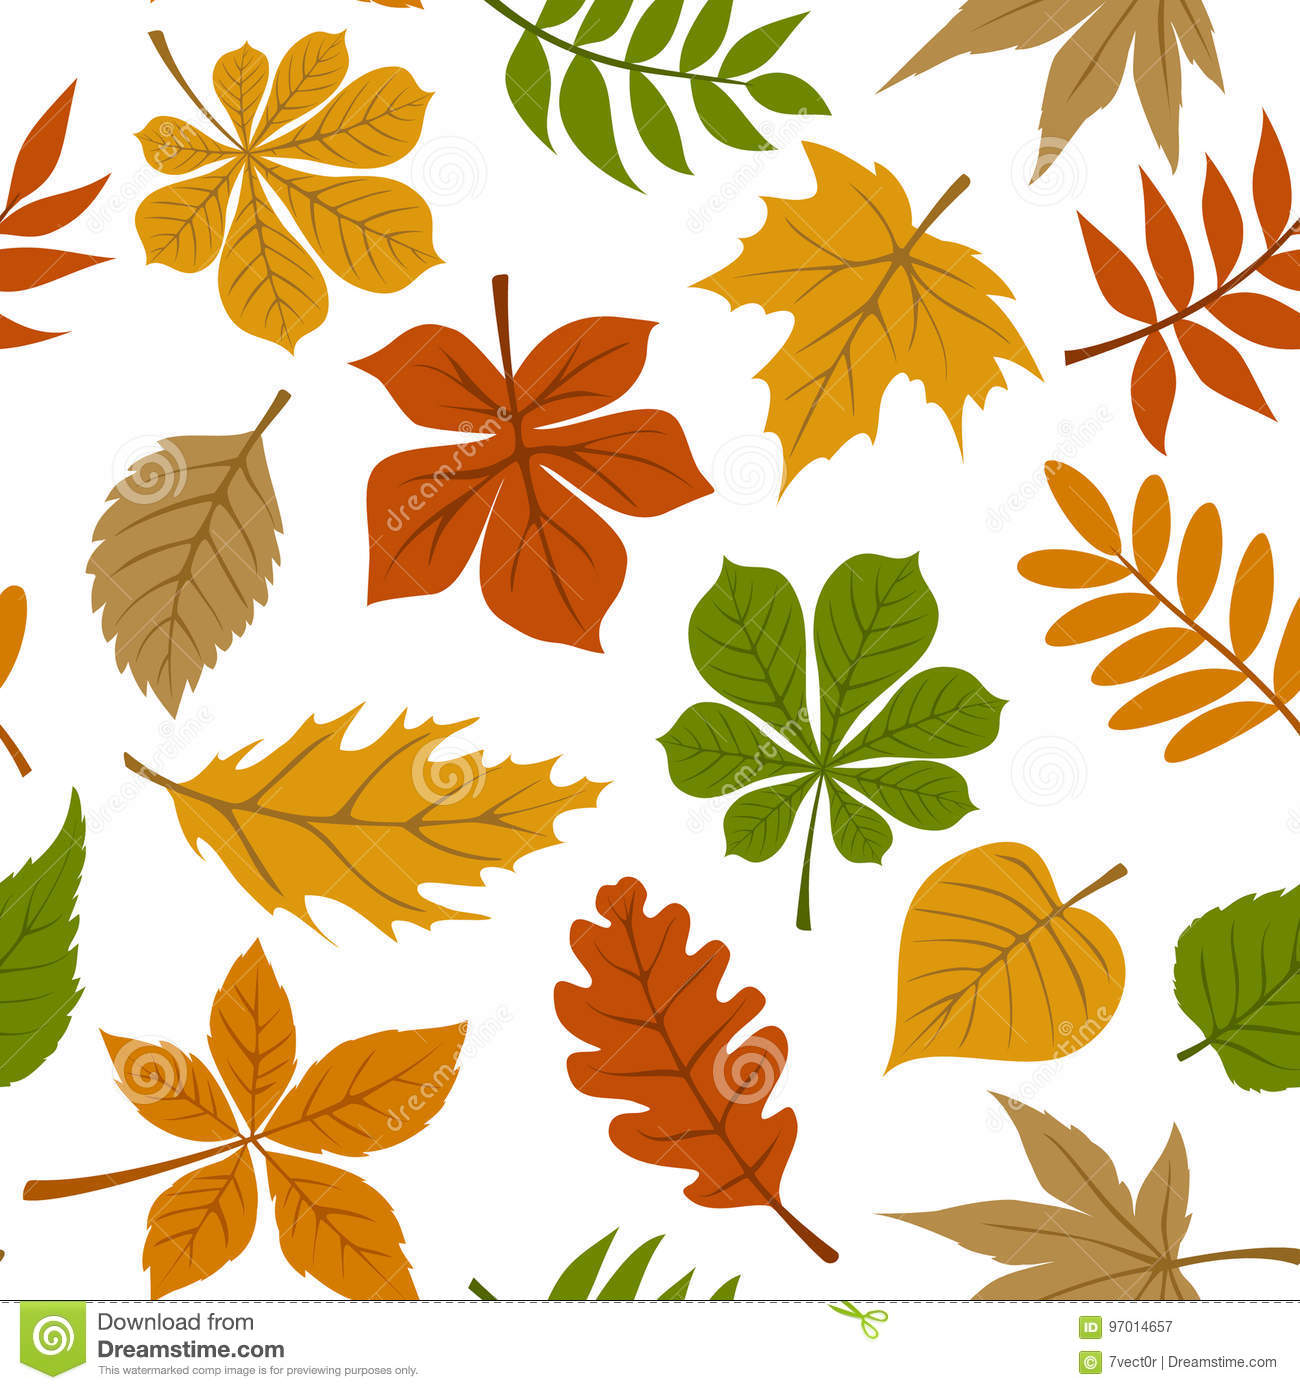 Seamless pattern with fall autumn leaves on white